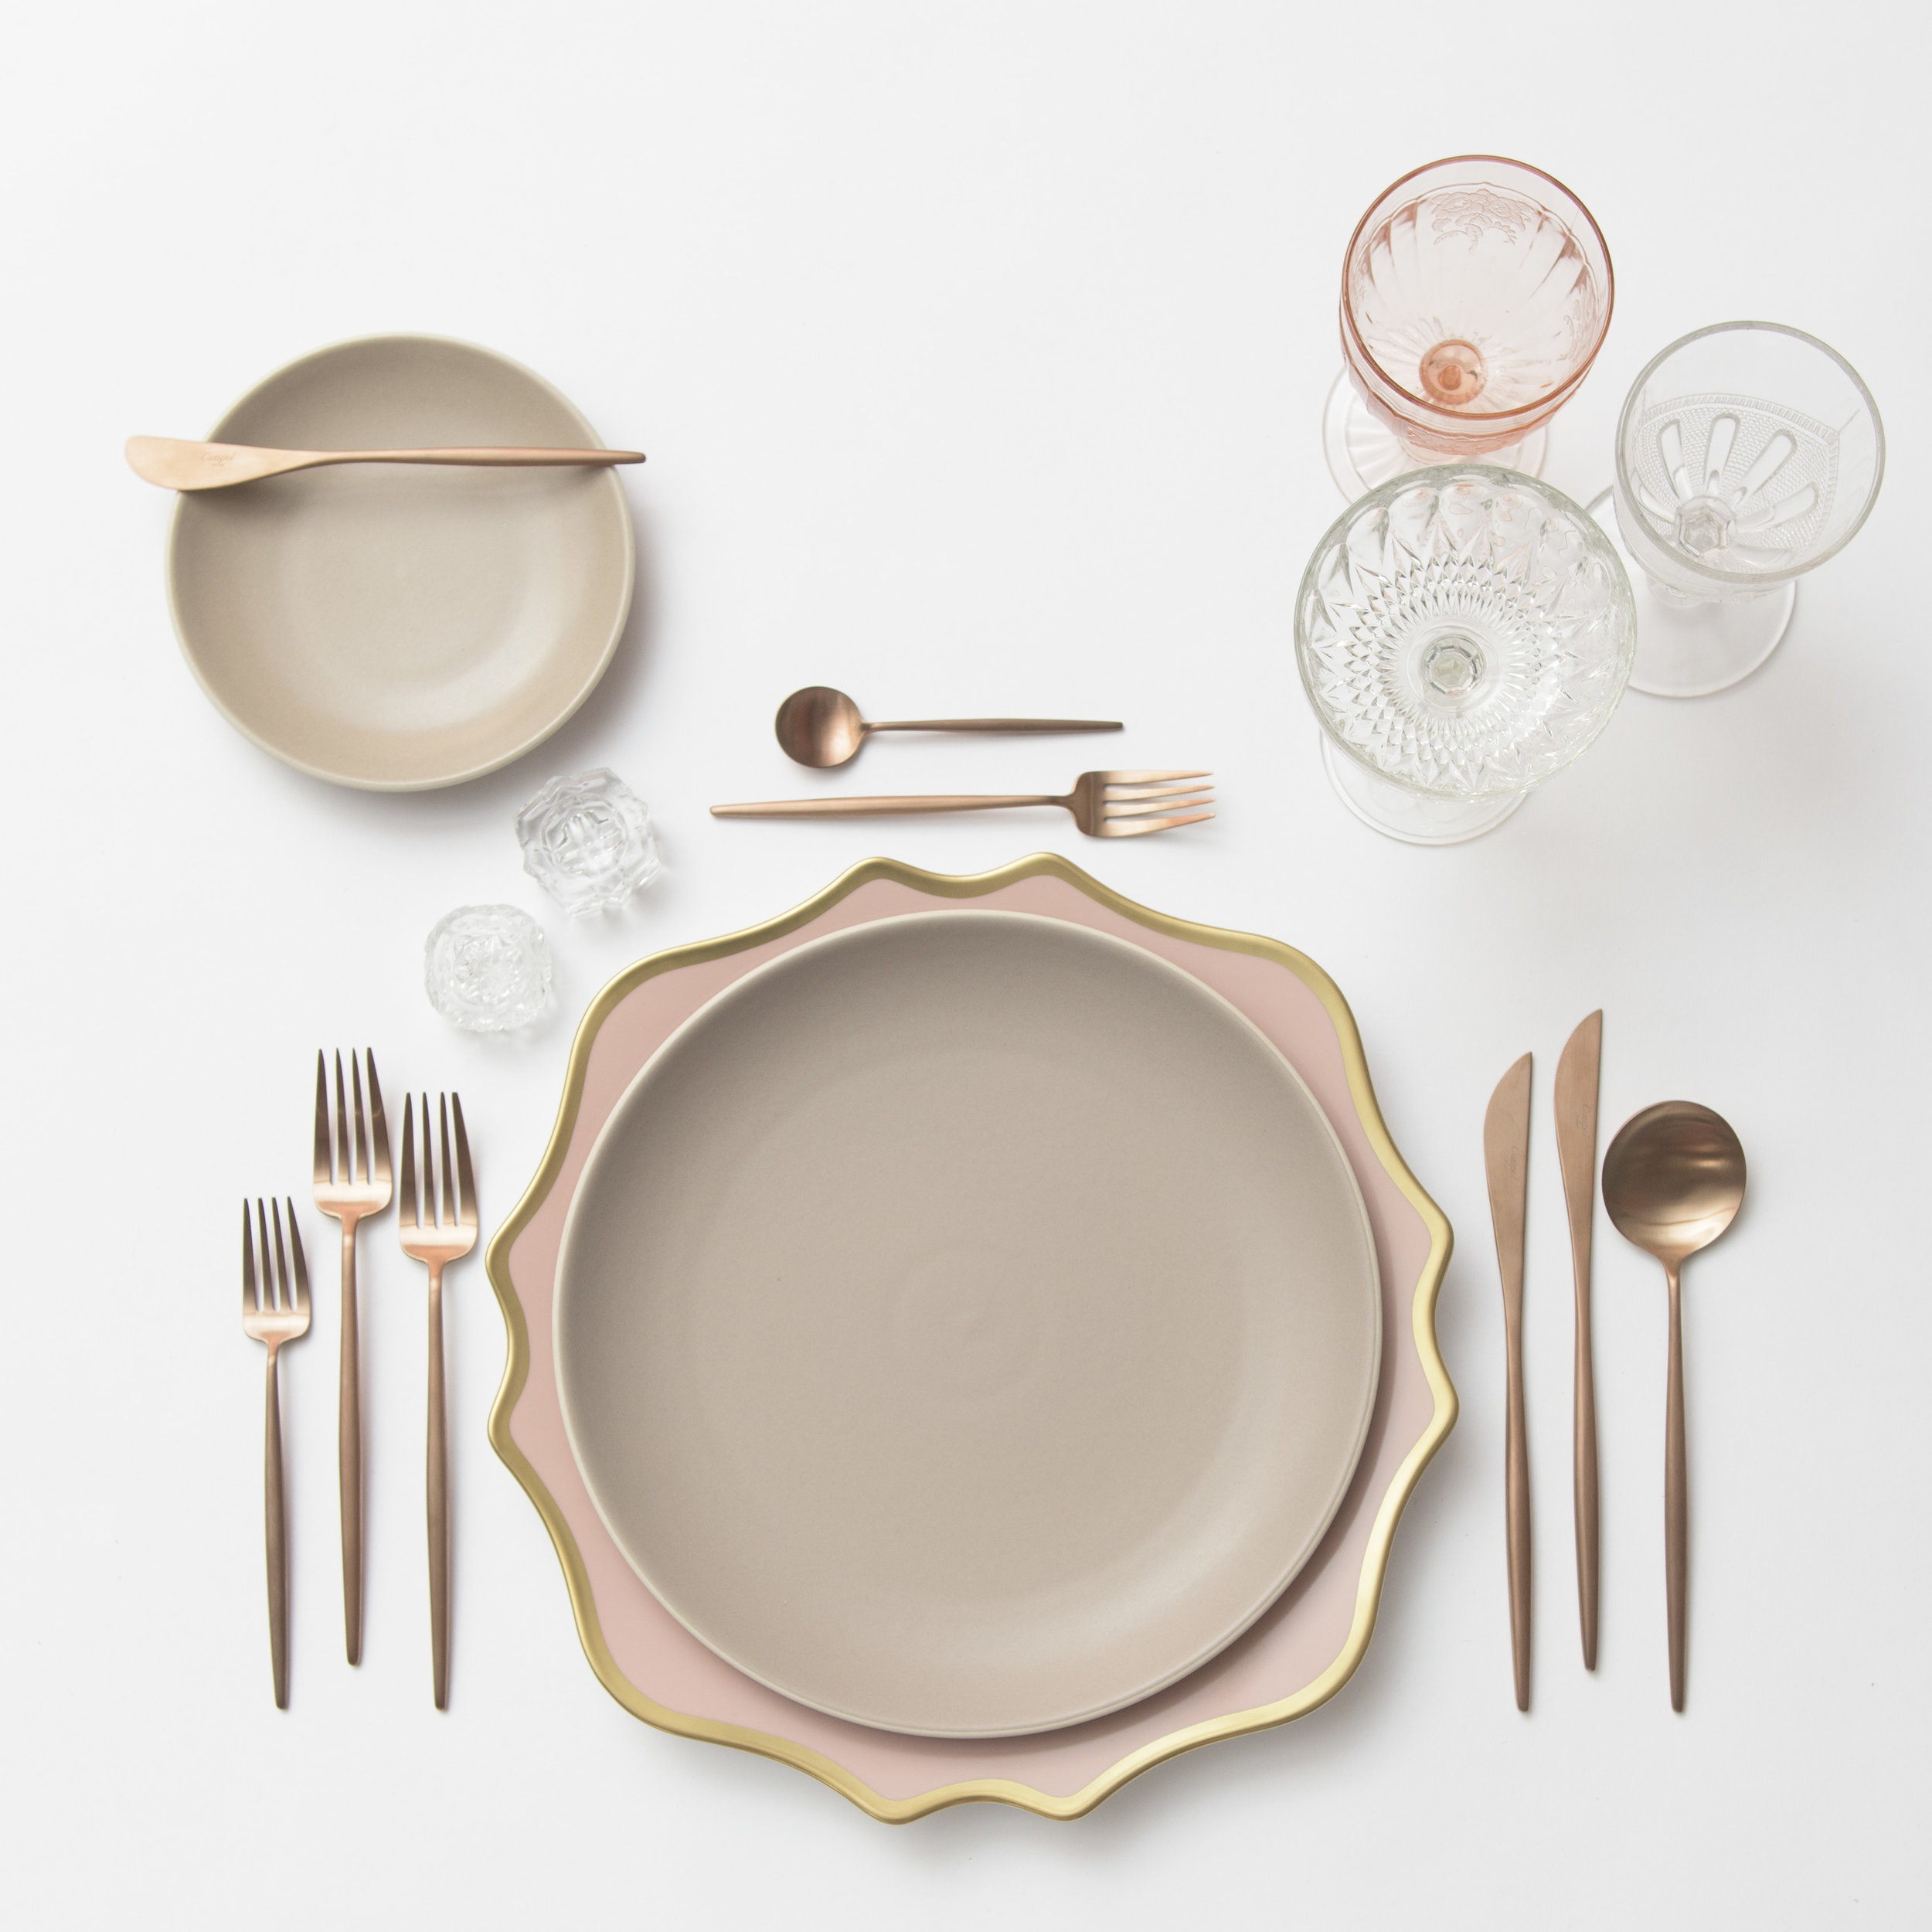 RENT: Anna Weatherley Chargers in Desert Rose/Gold + Heath Ceramics in French Grey + Moon Flatware in Brushed Rose Gold + Pink Vintage Goblets + Early American Pressed Glass Goblets + Vintage Champagne Coupes + Antique Crystal Salt Cellars  SHOP: Moon Flatware in Brushed Rose Gold